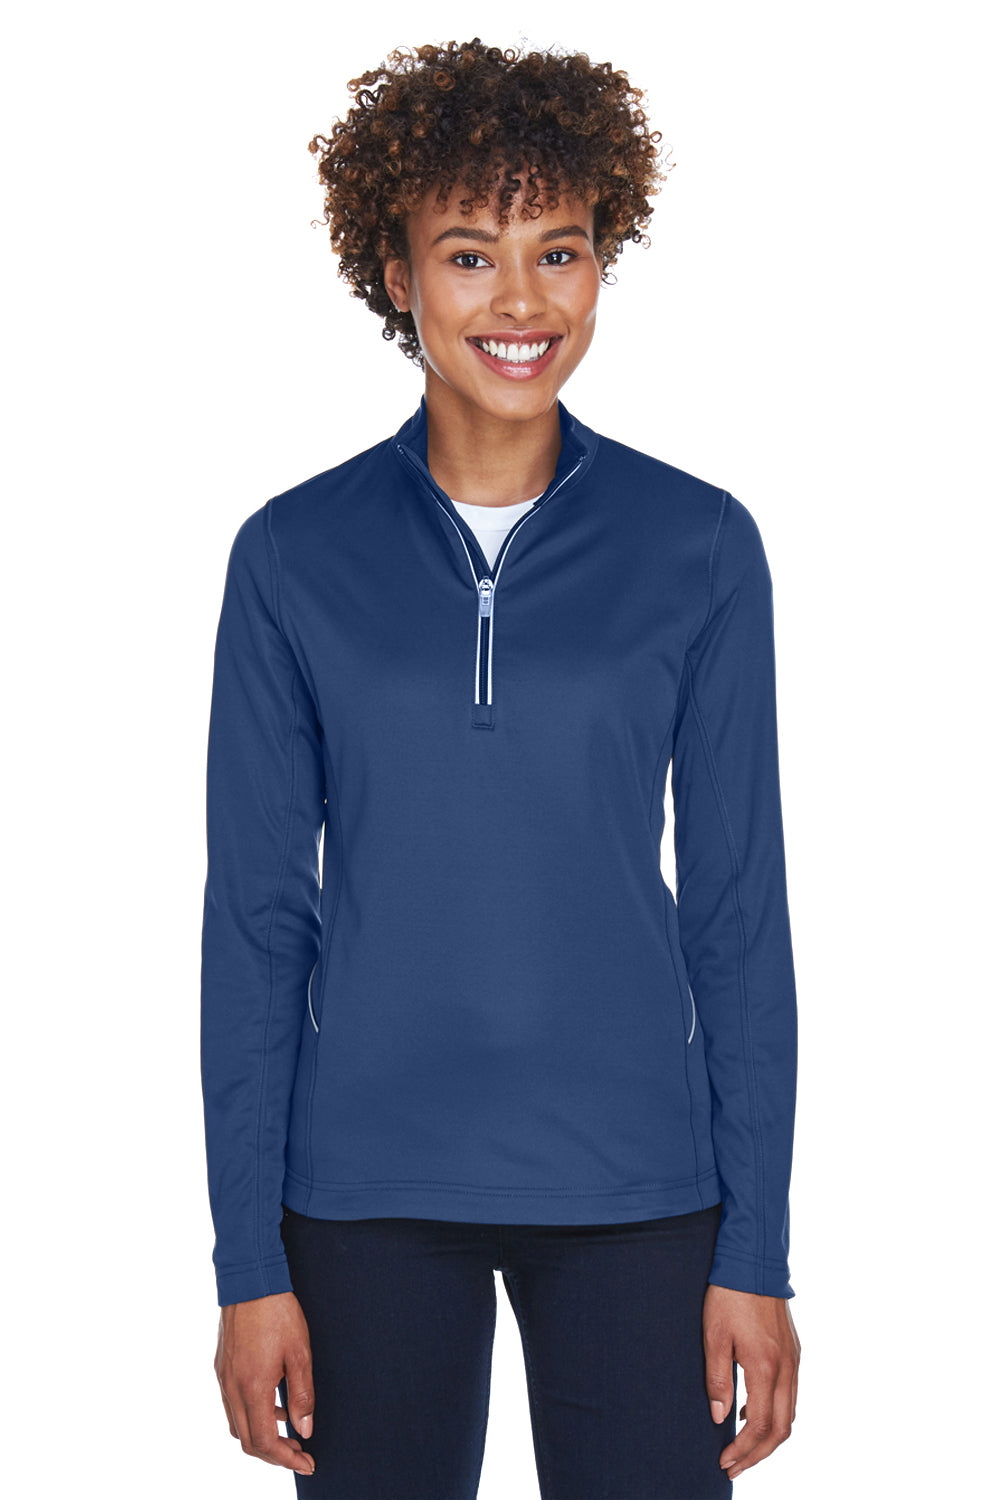 UltraClub 8230L Womens Cool & Dry Moisture Wicking 1/4 Zip Sweatshirt Navy Blue Front